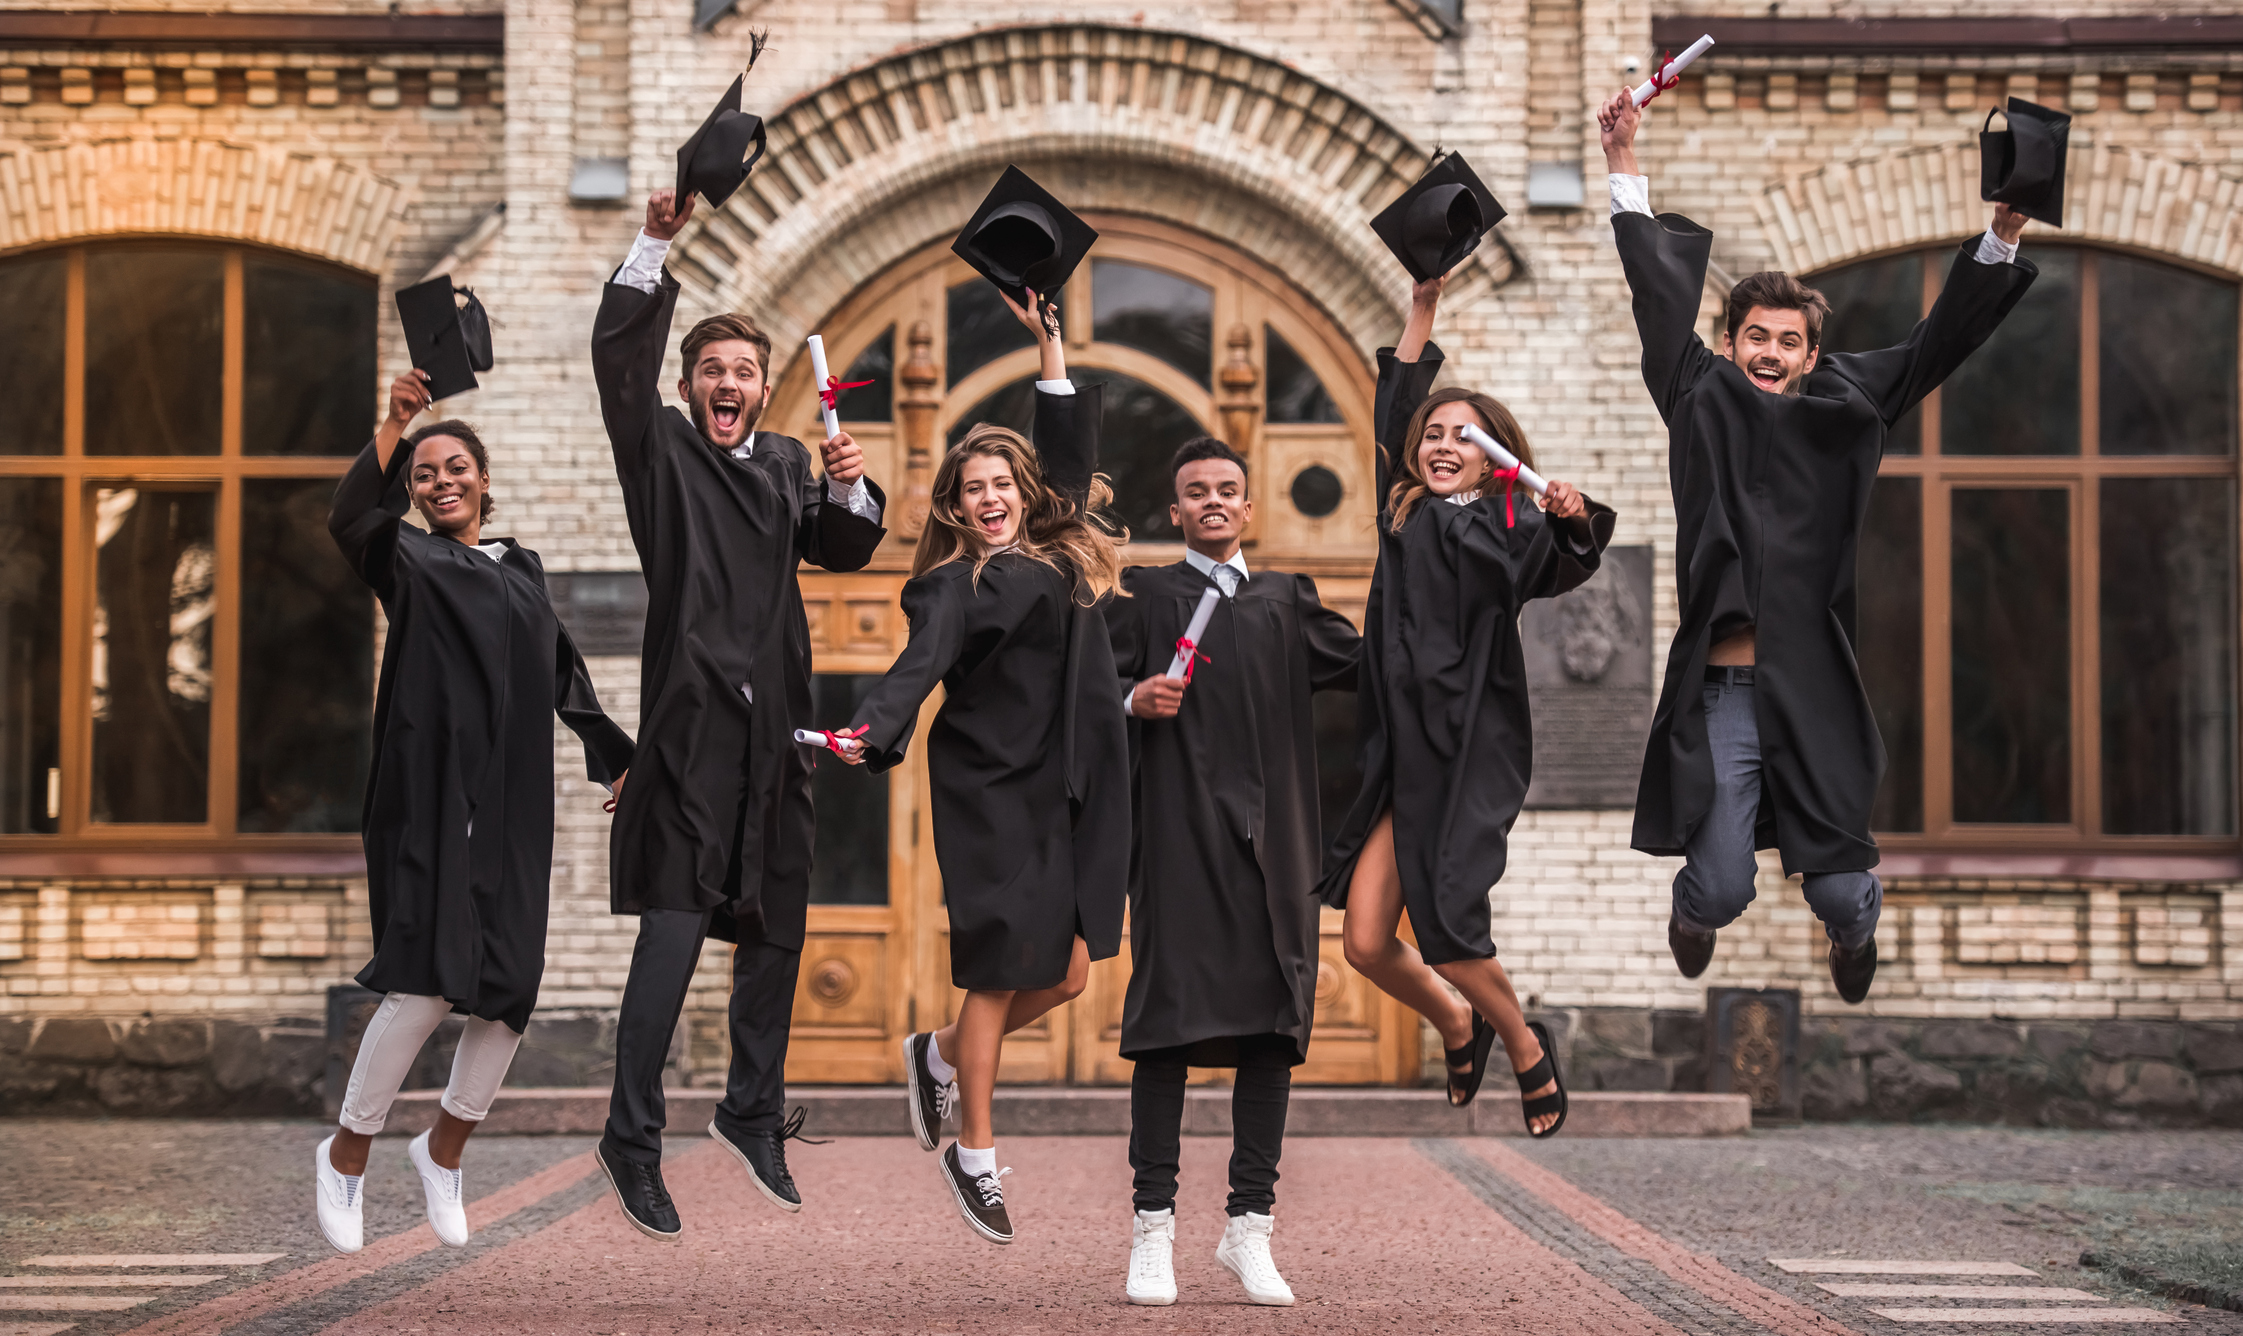 Successful graduates in academic dresses are holding diplomas, looking at camera and smiling while jumping for the photo outdoors